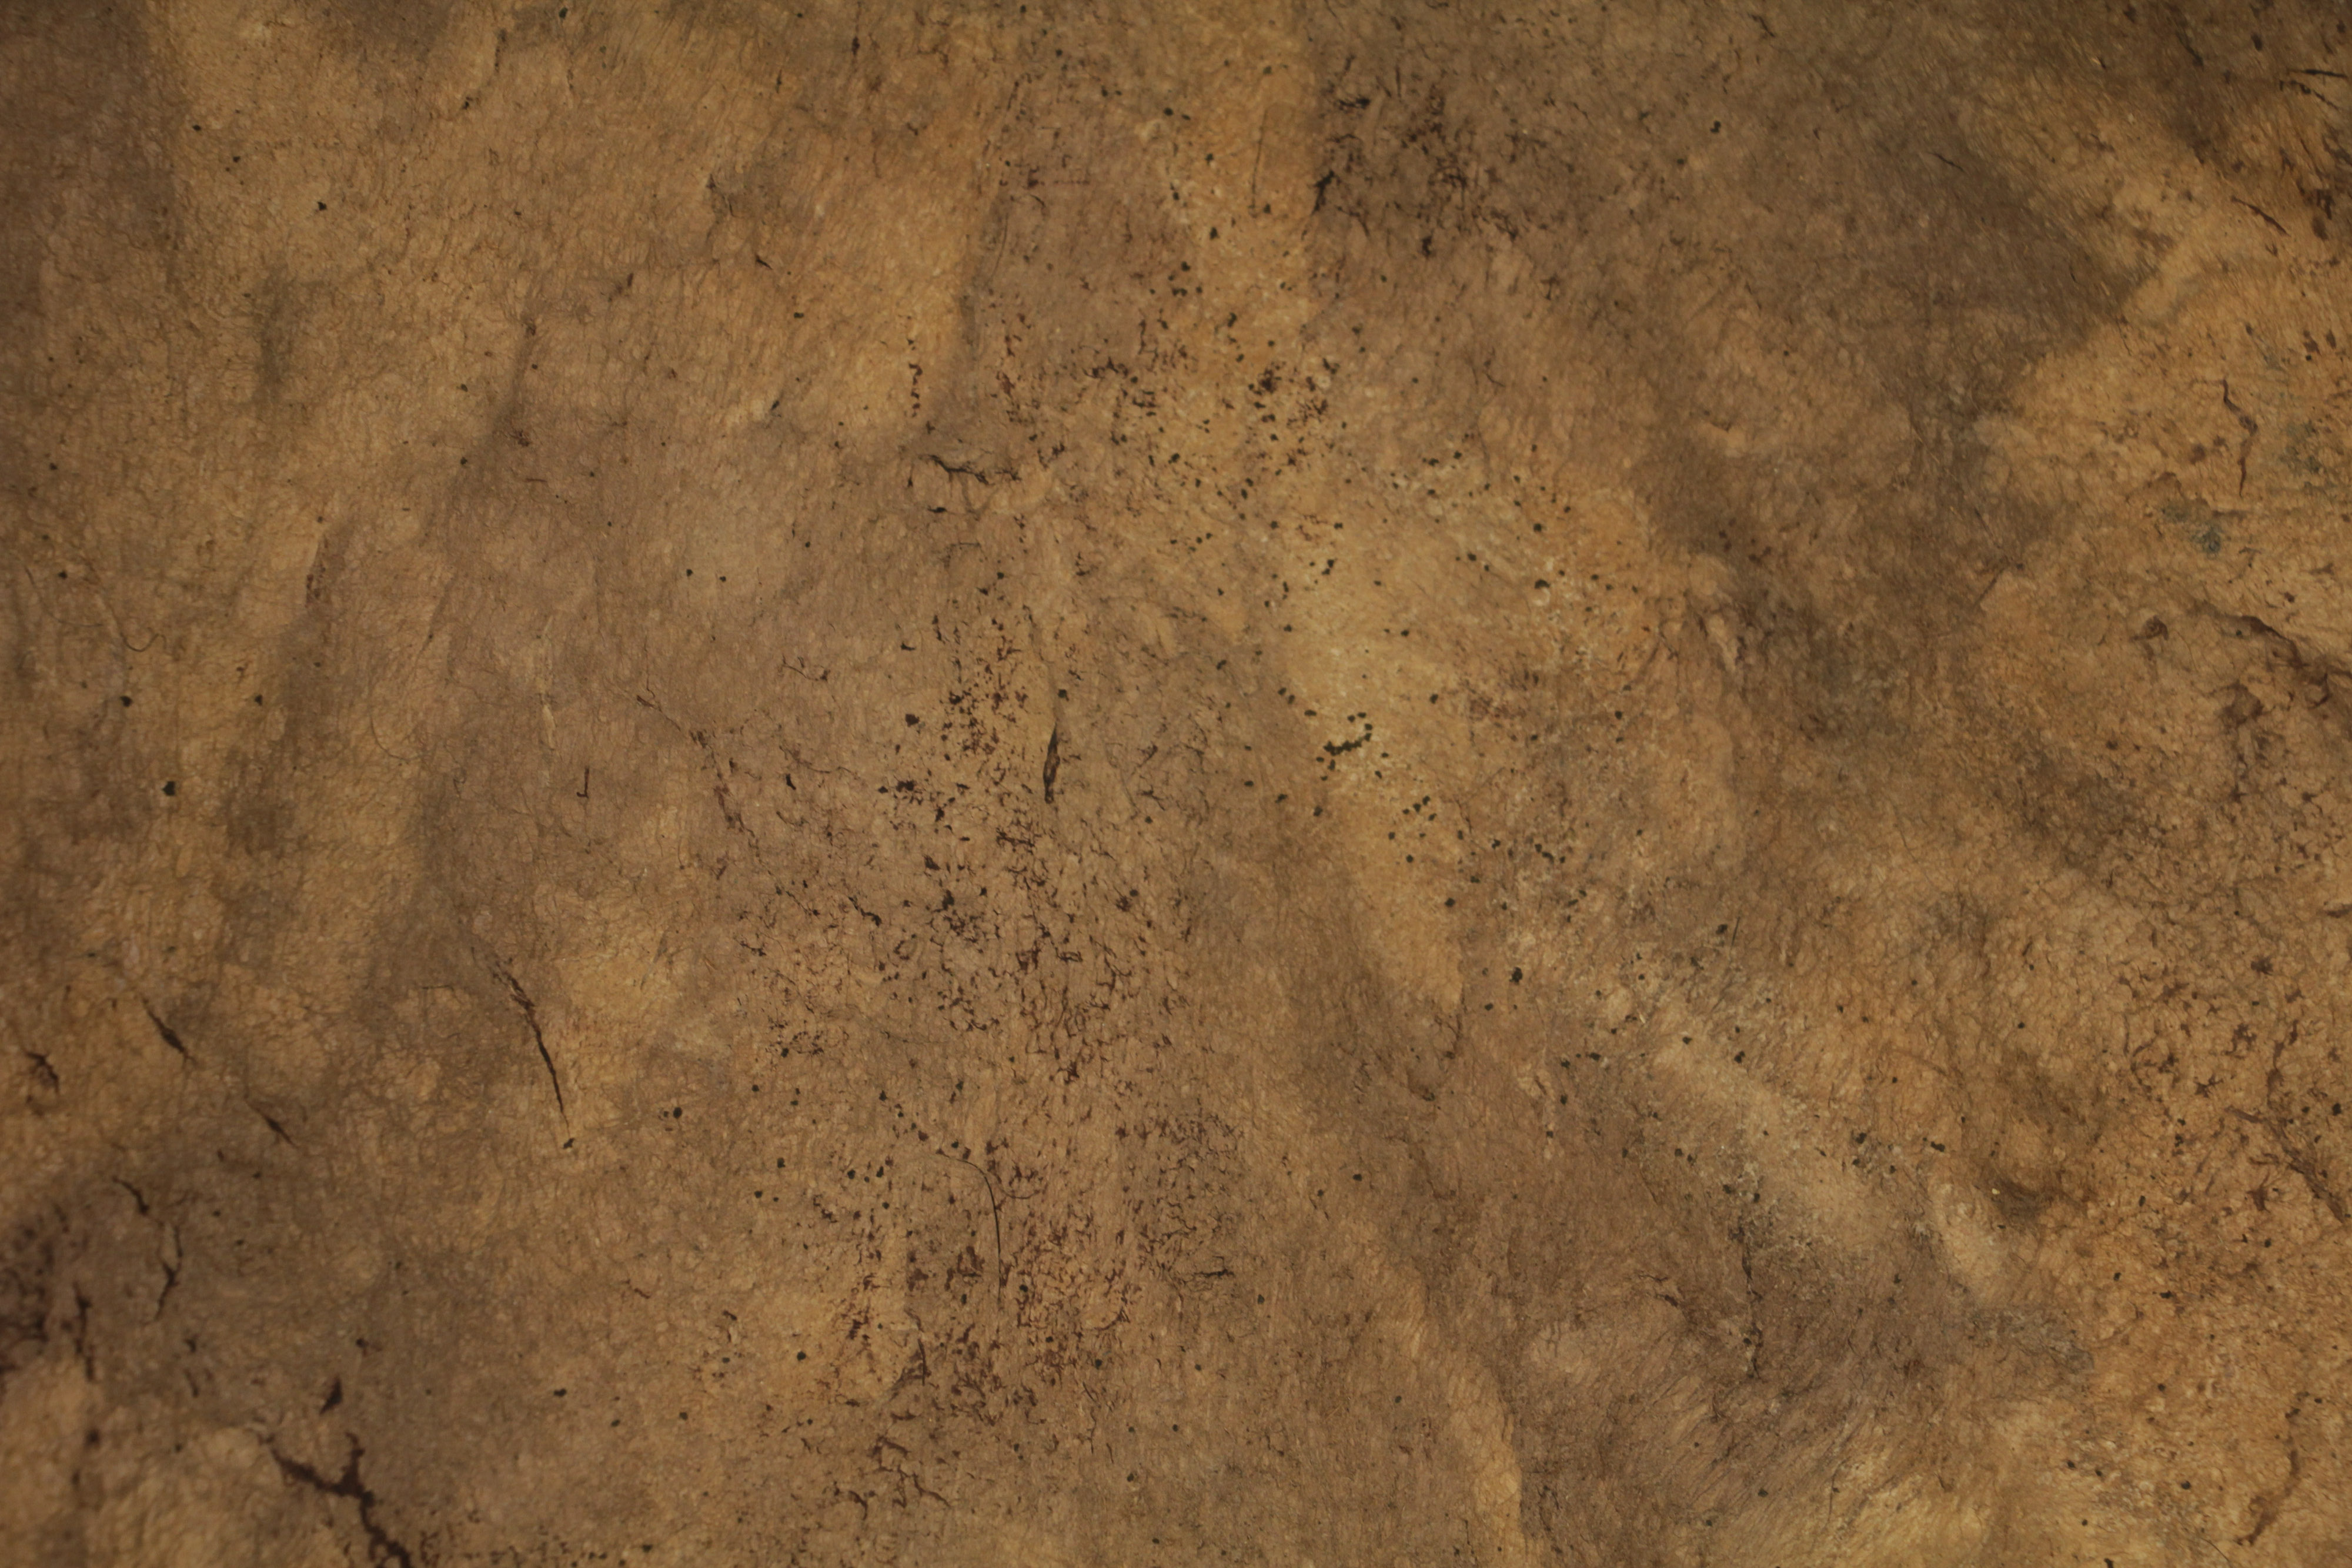 Leather Texture Spotted Rough Grunge Bound Journal Photo